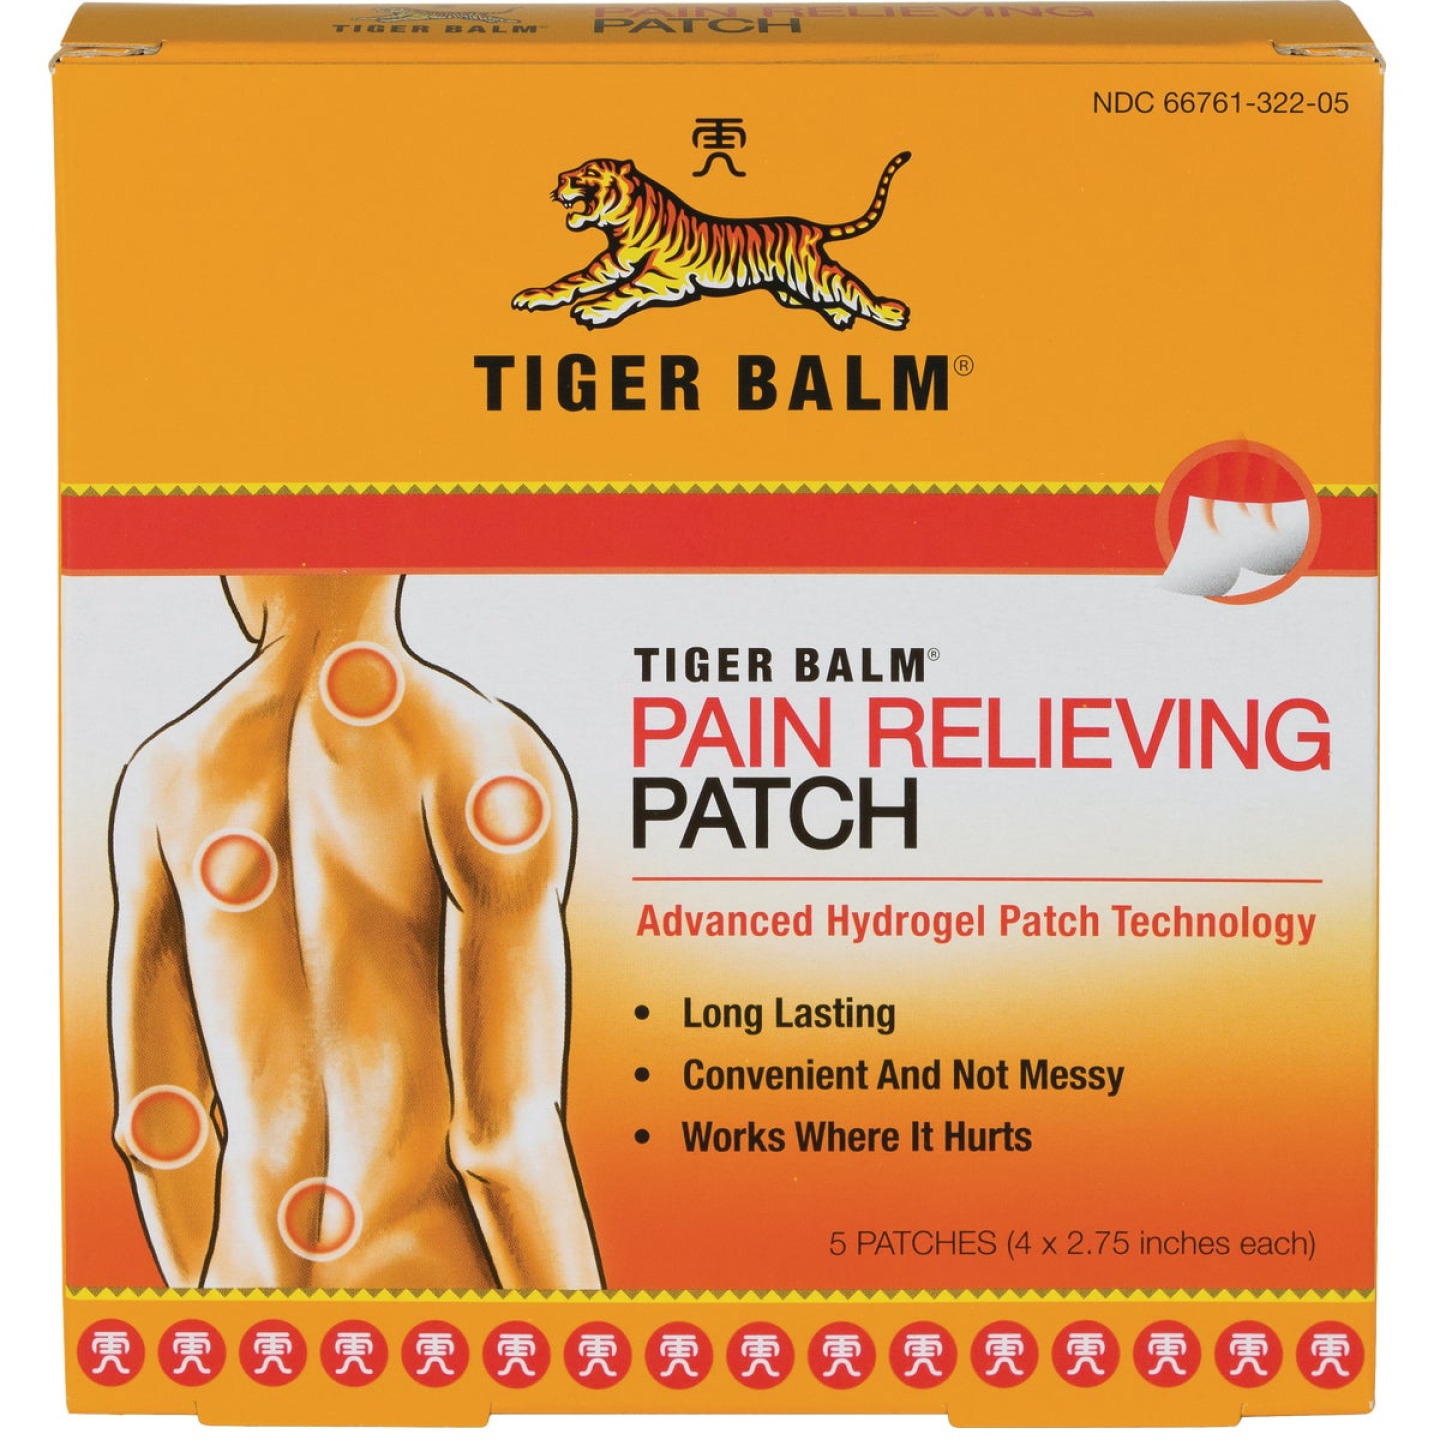 Tiger Balm Pain Relieving Patch (5 Count) Image 1